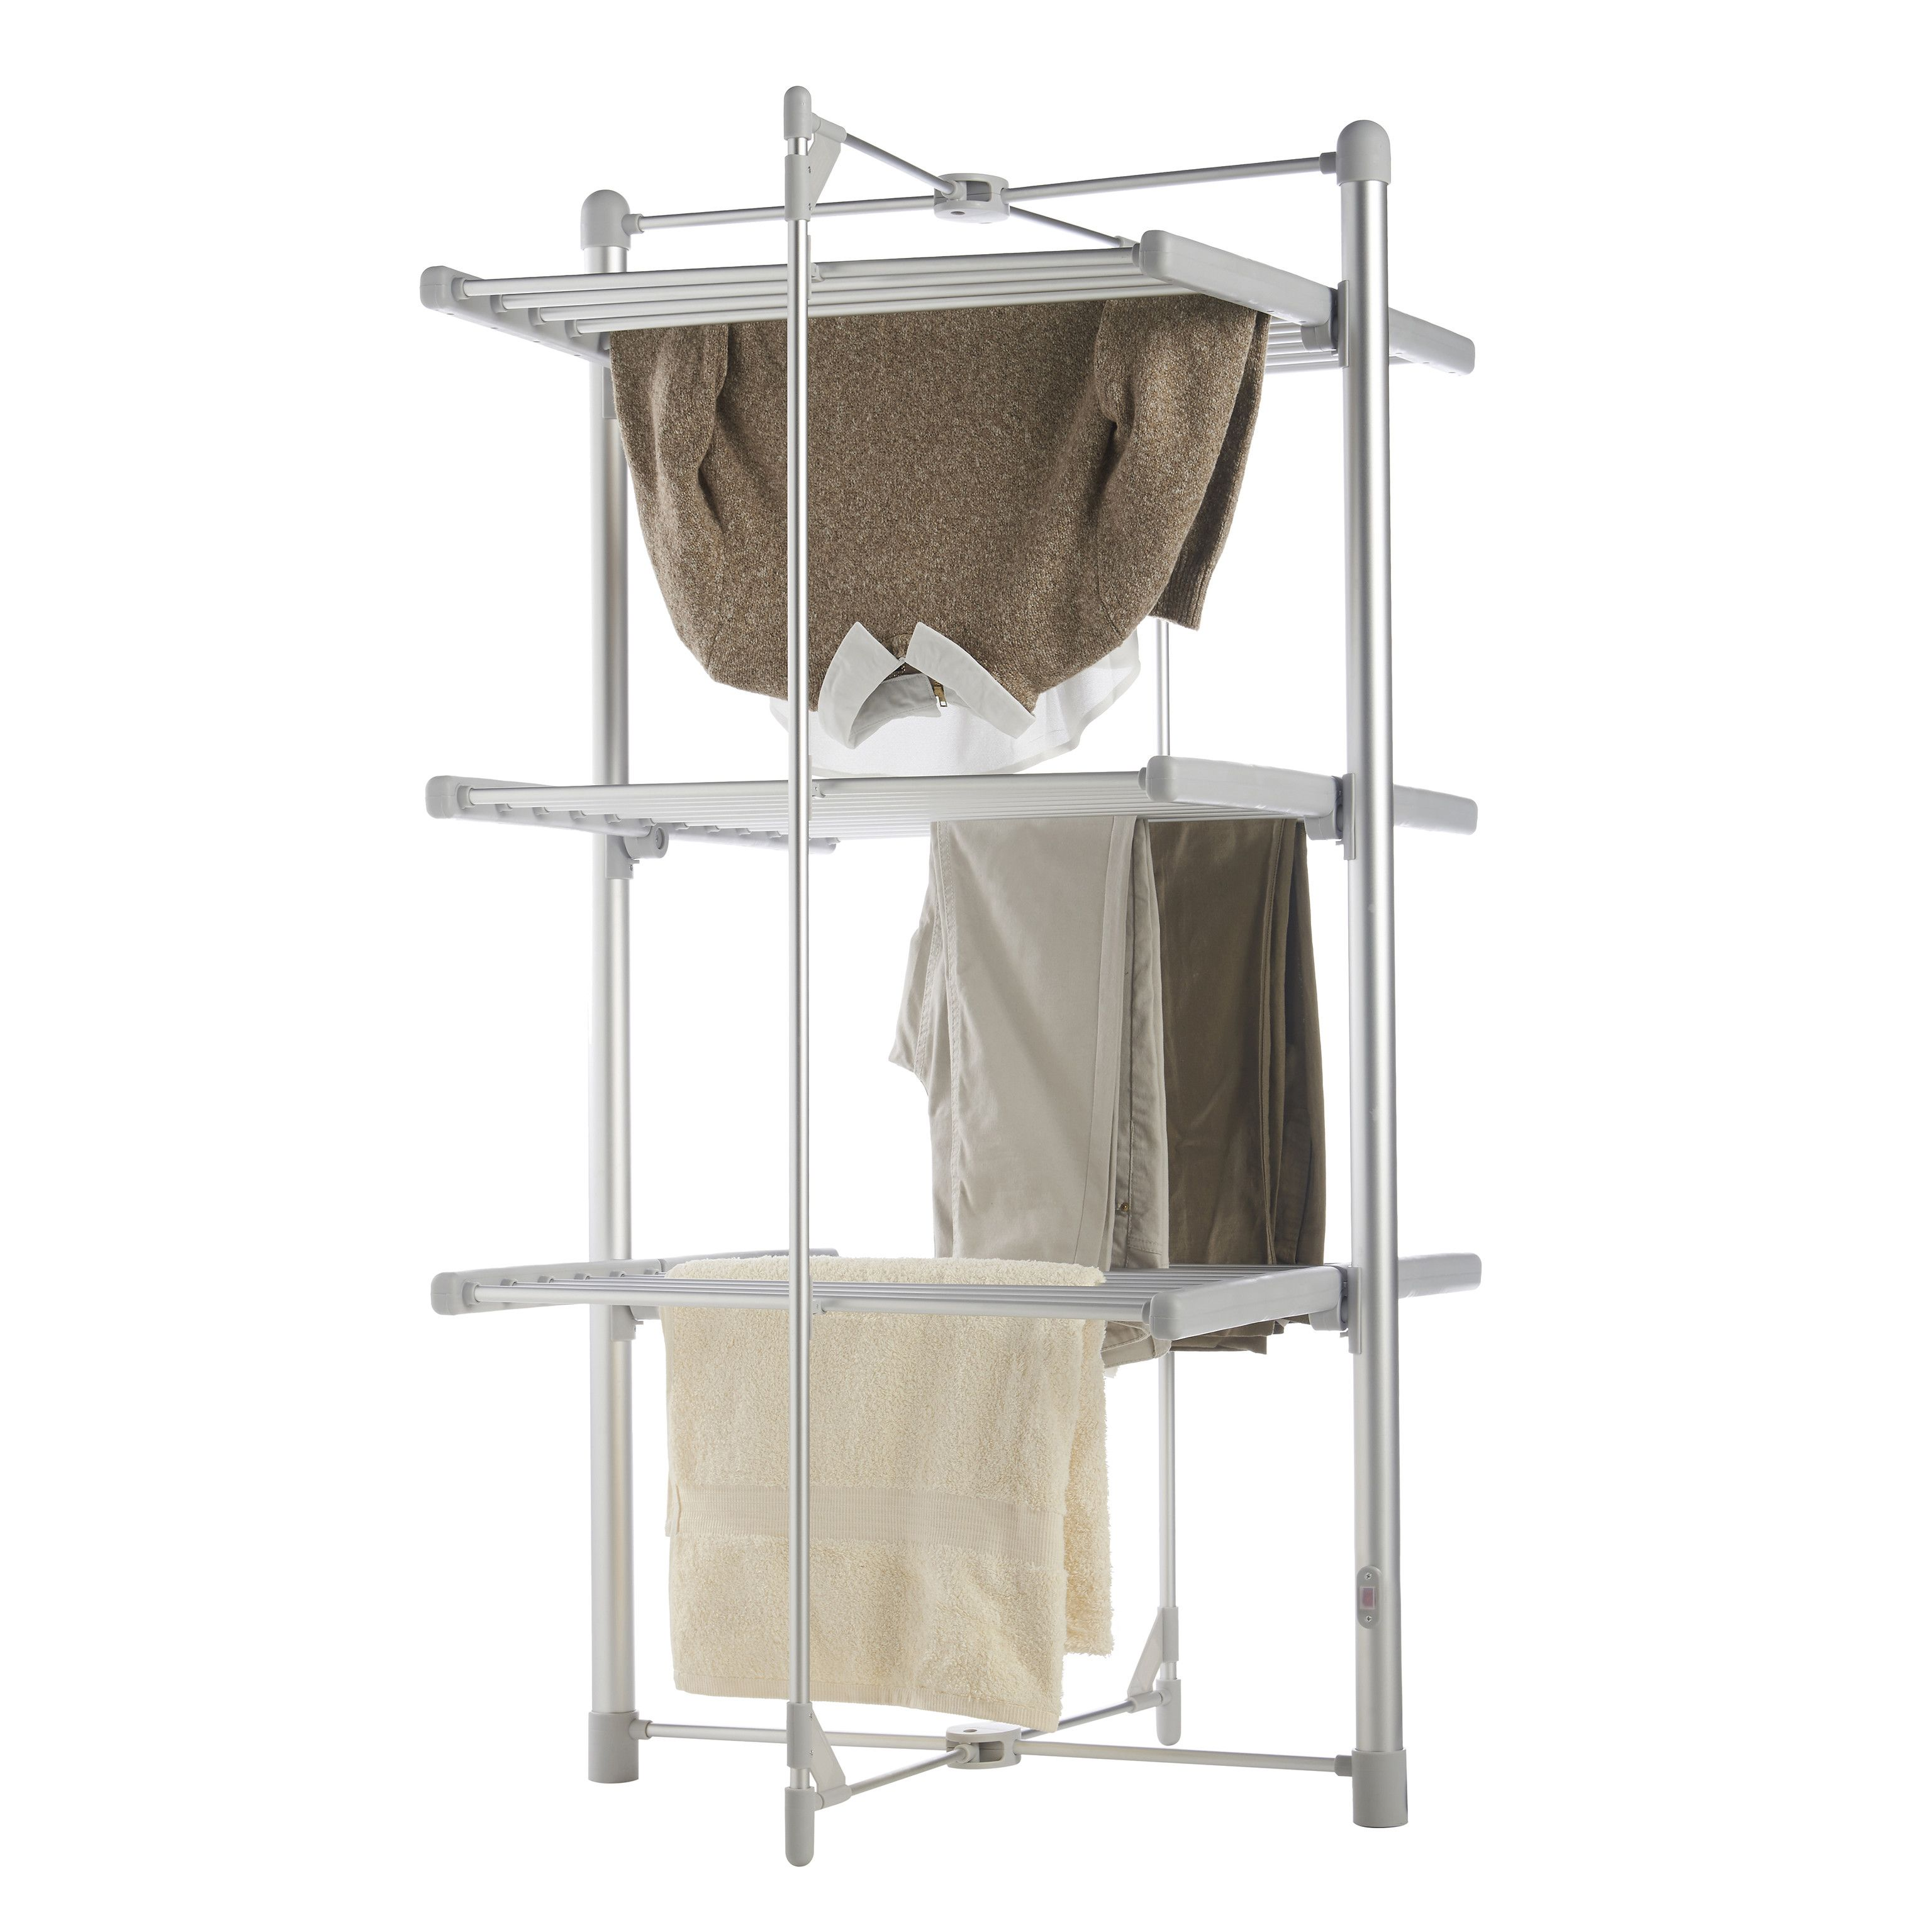 VonHaus Heated Clothes Drying Rack